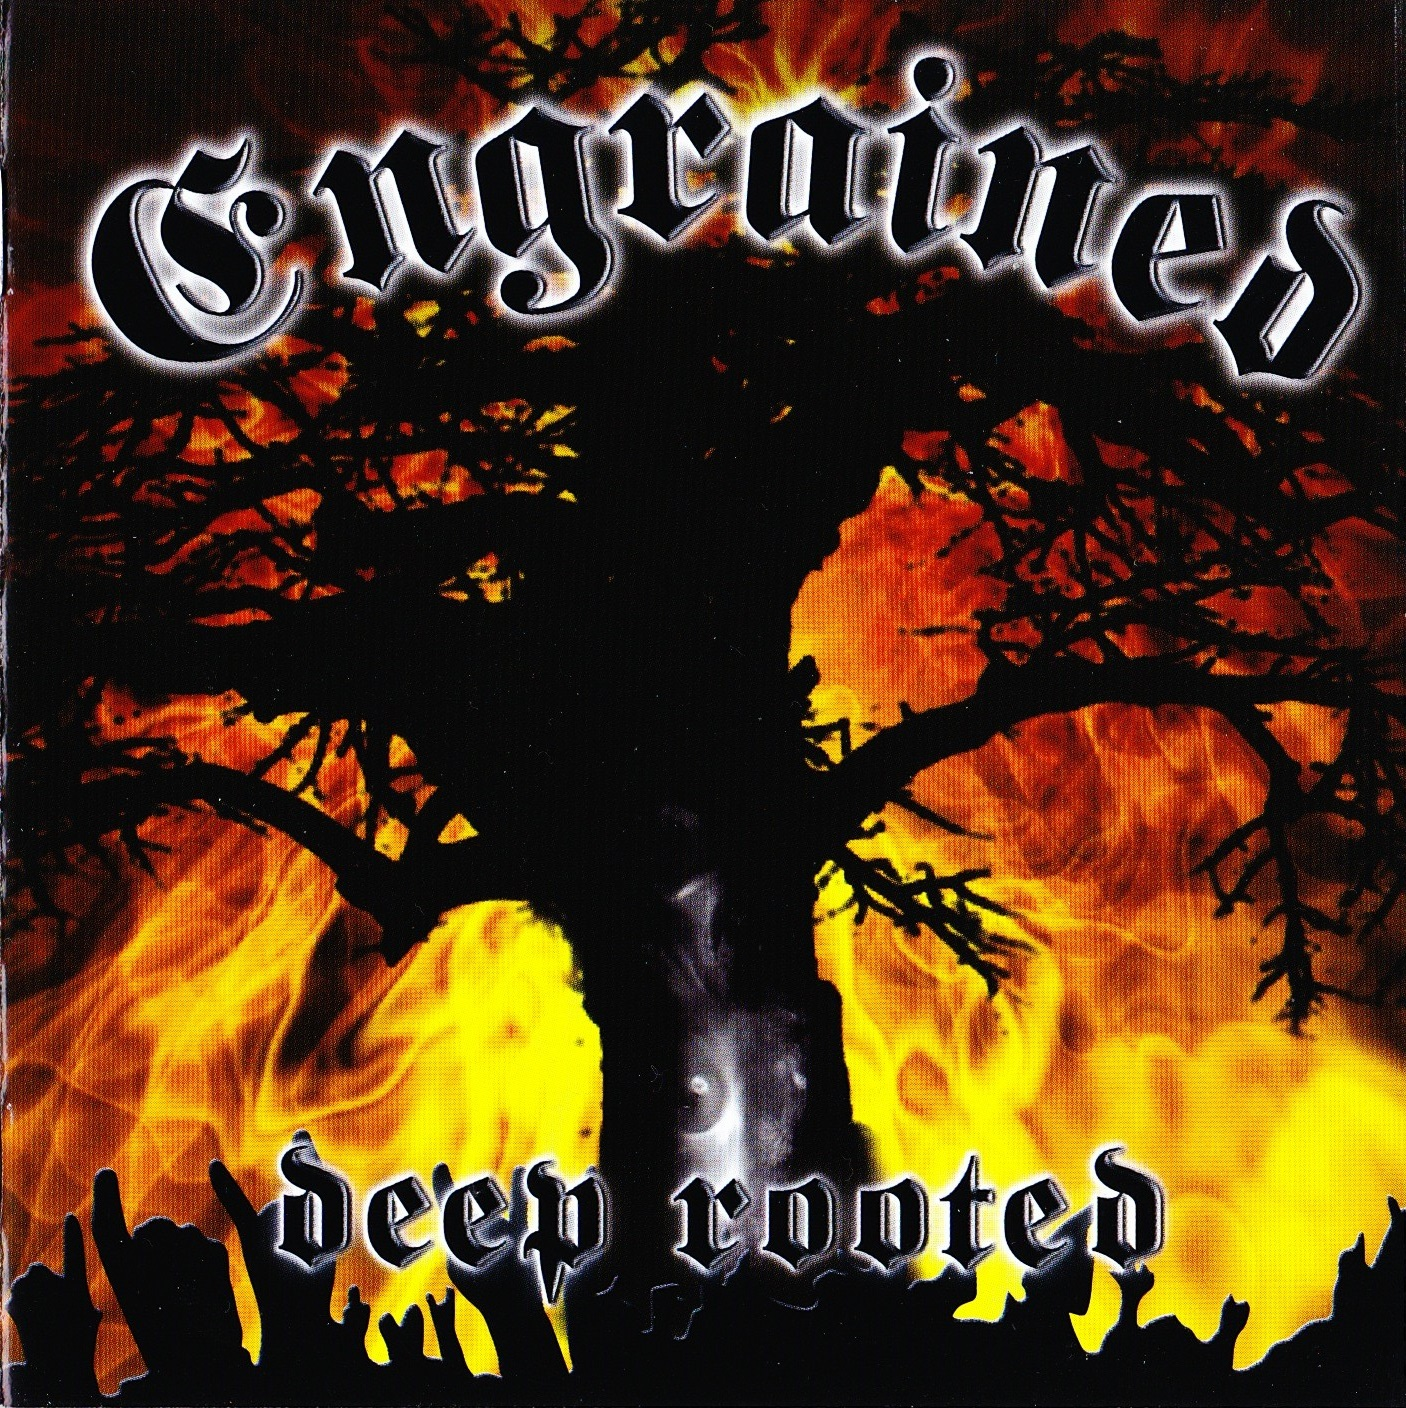 Engrained — Deep Rooted (2010)